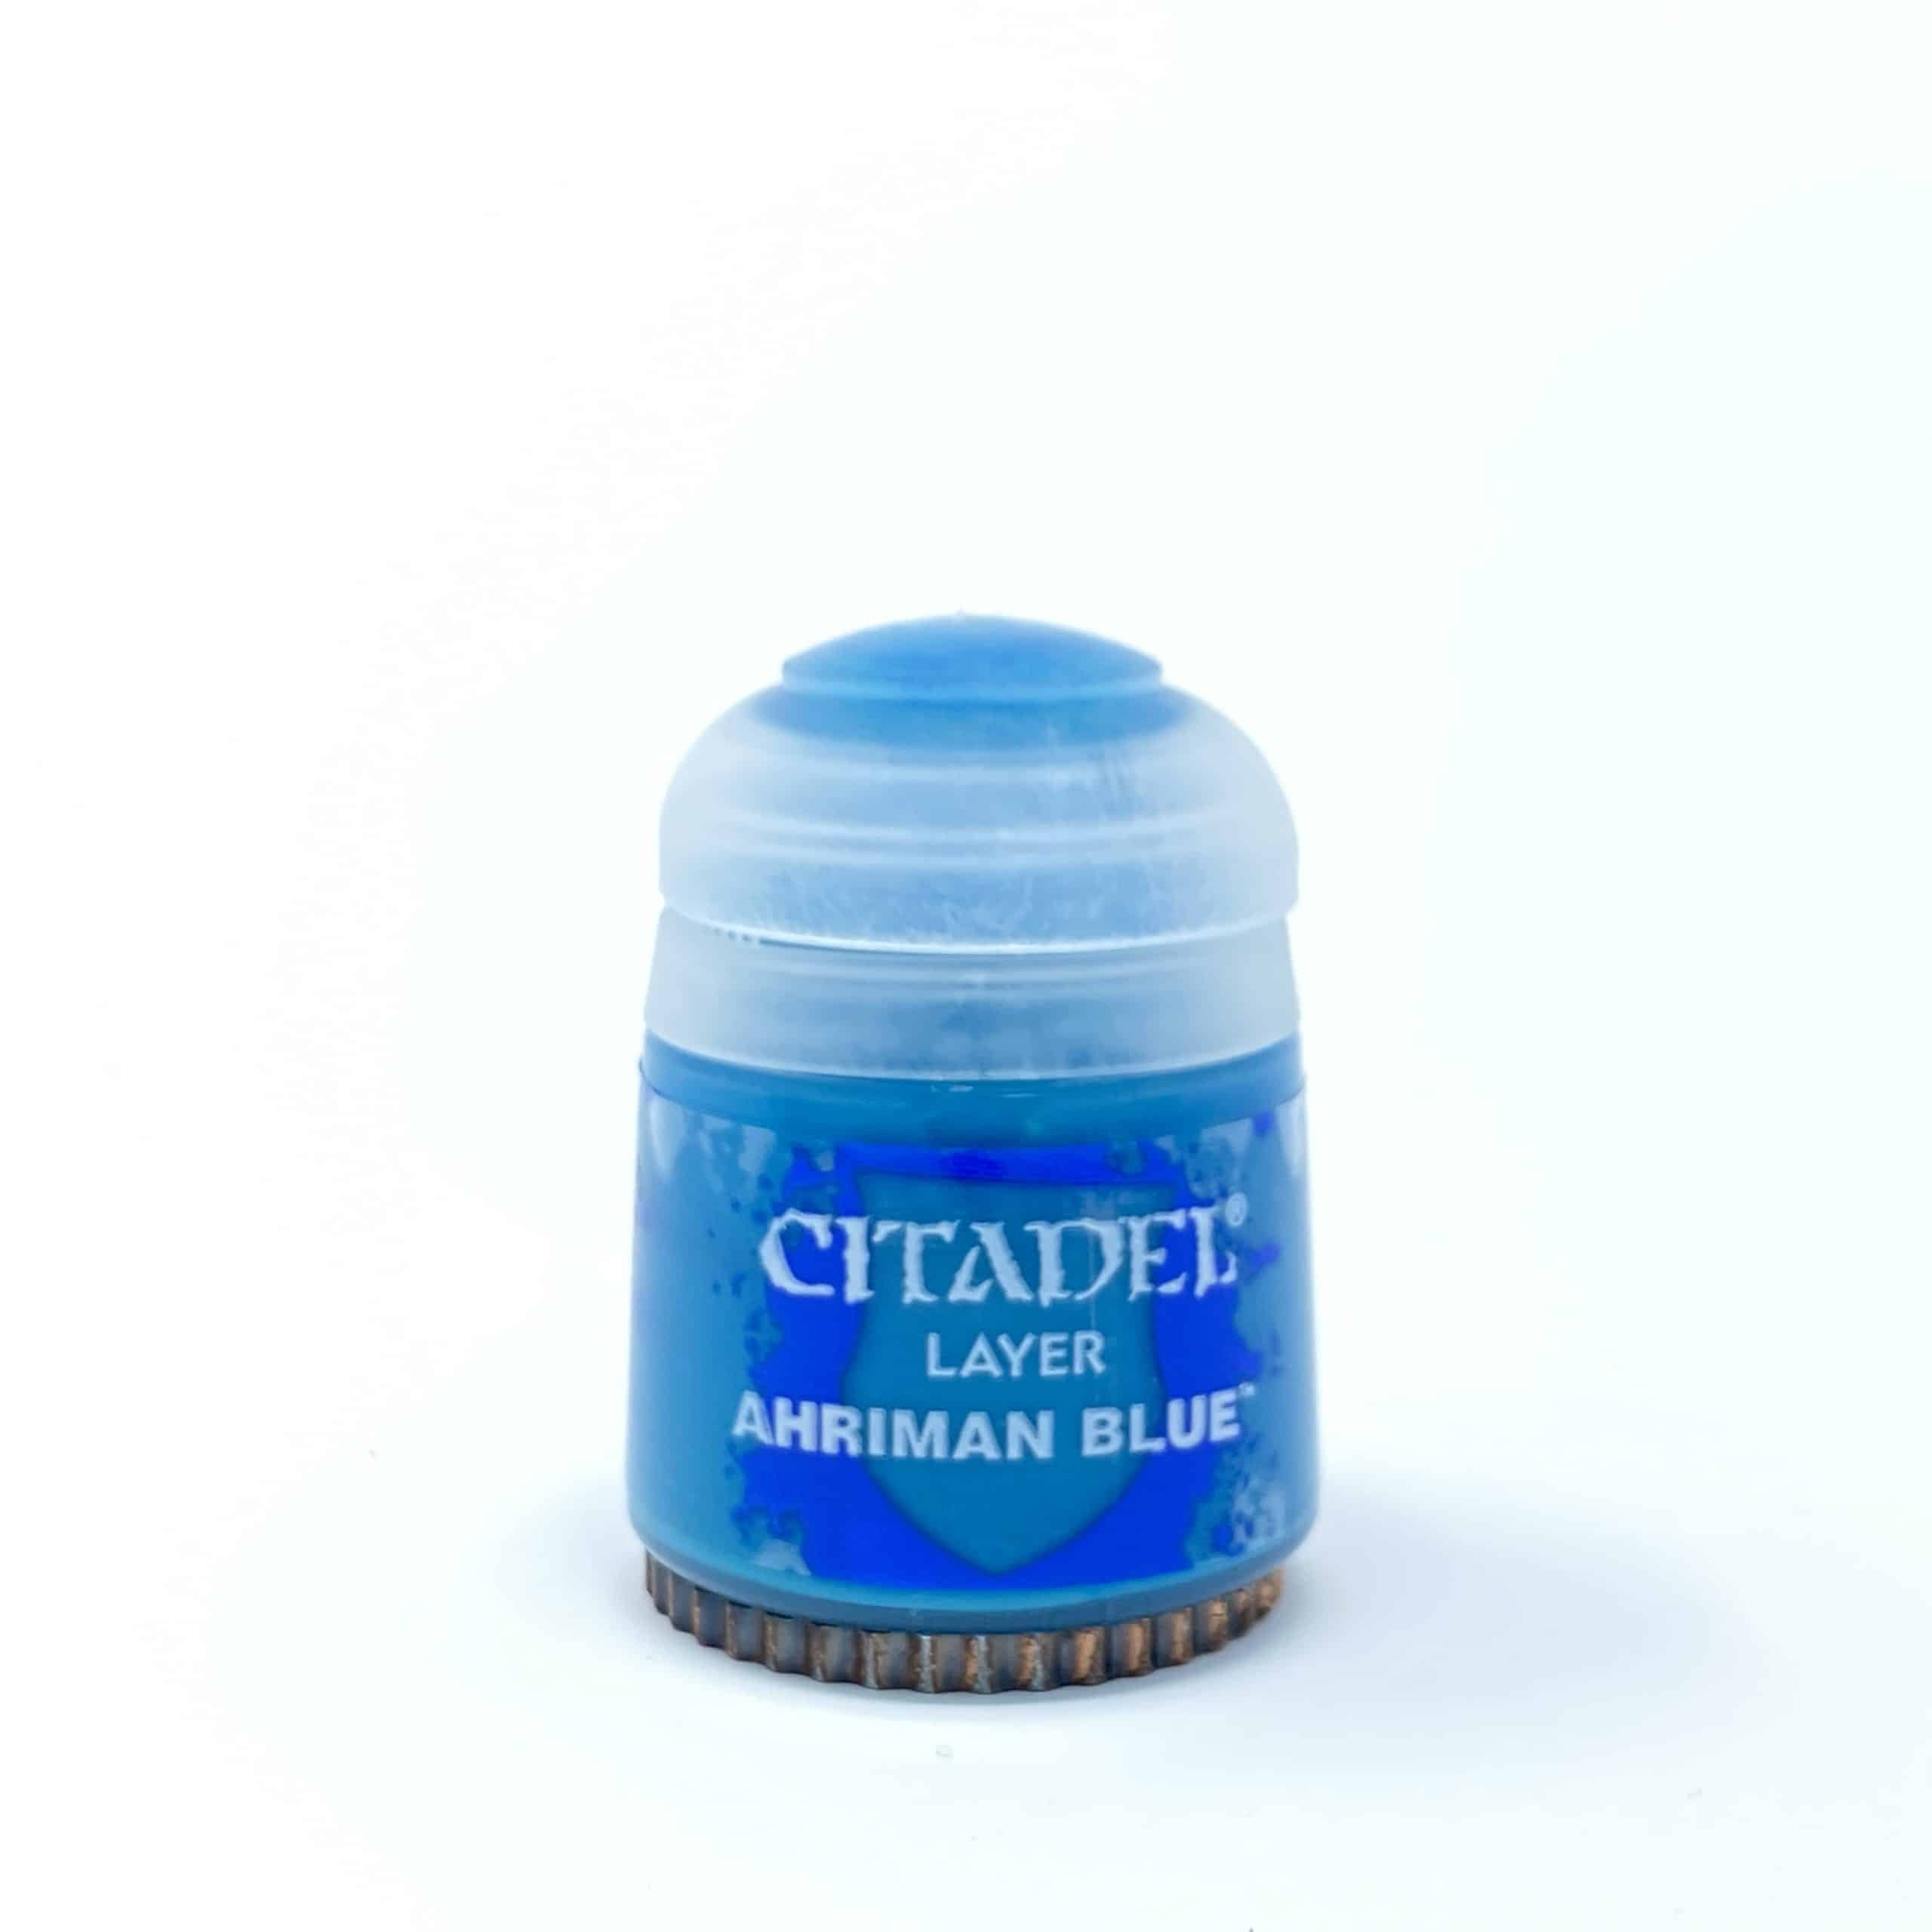 Citadel Paint - Layer: Ahriman Blue